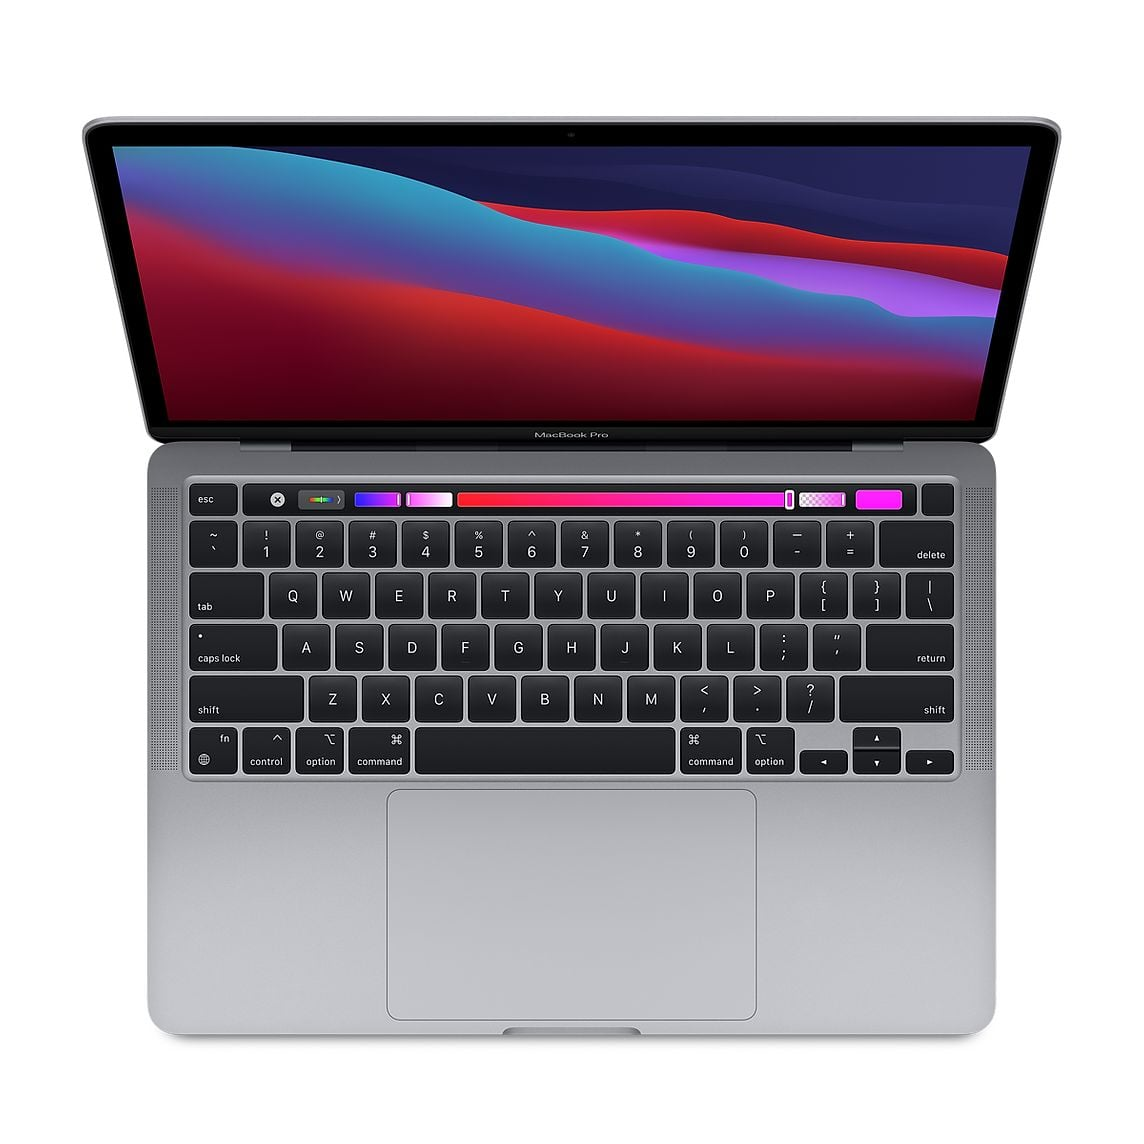 Refurbished 13.3-inch MacBook Pro Apple M1 Chip with 8‑Core CPU and 8‑Core GPU - Space Gray $1099